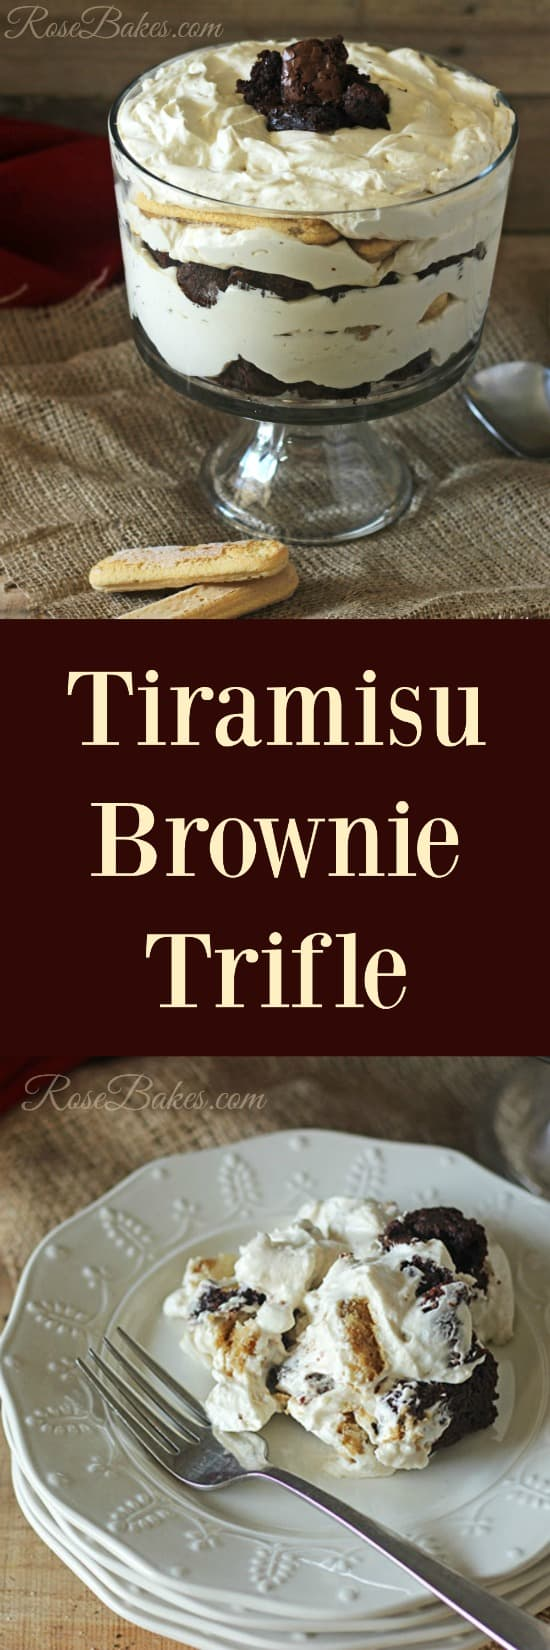 Tiramisu Brownie Trifle Layers of Brownie, Whipped Cream Cheese Filling & Coffee-soaked Lady Fingers by RoseBakes.com